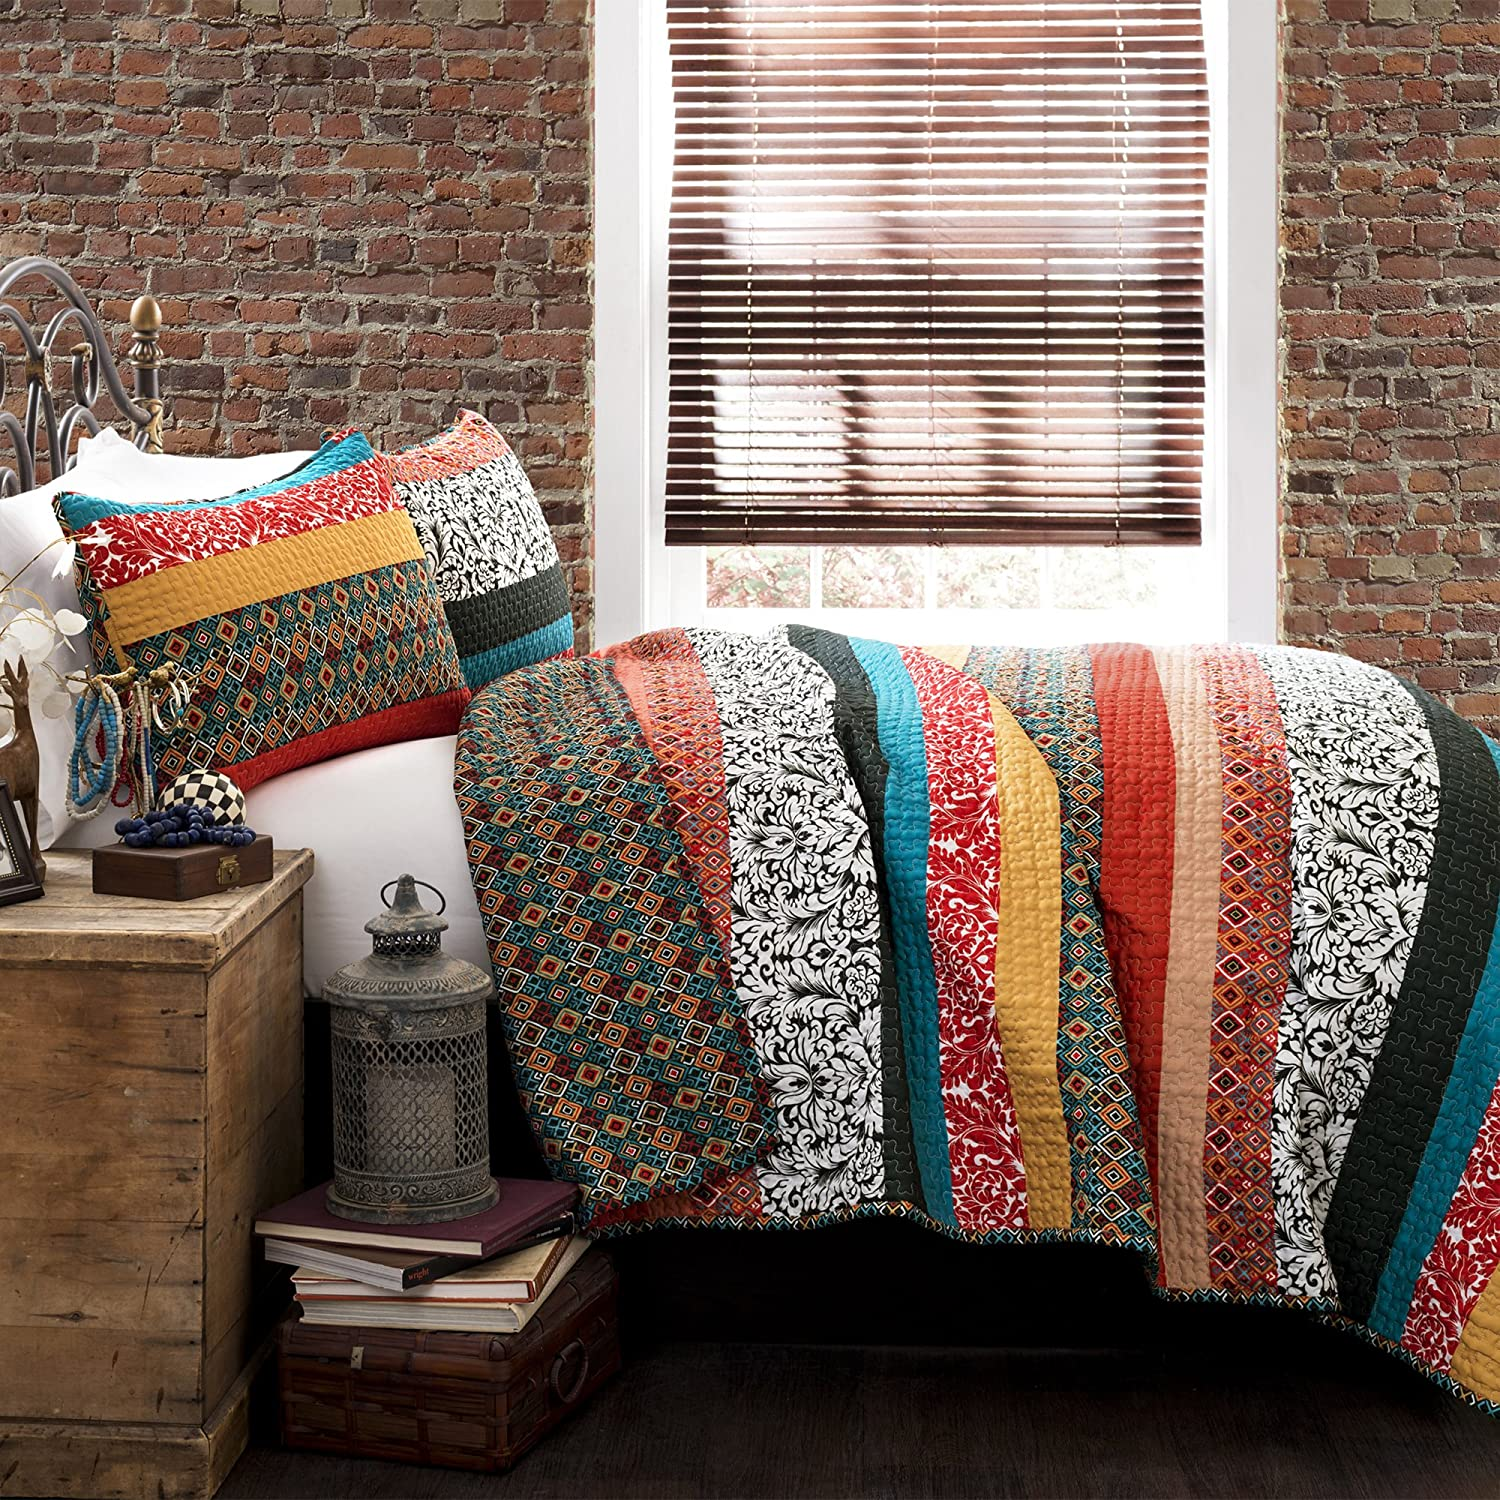 Lush Decor Boho Stripe Quilt Reversible 3 Piece Bohemian Design Bedding Set